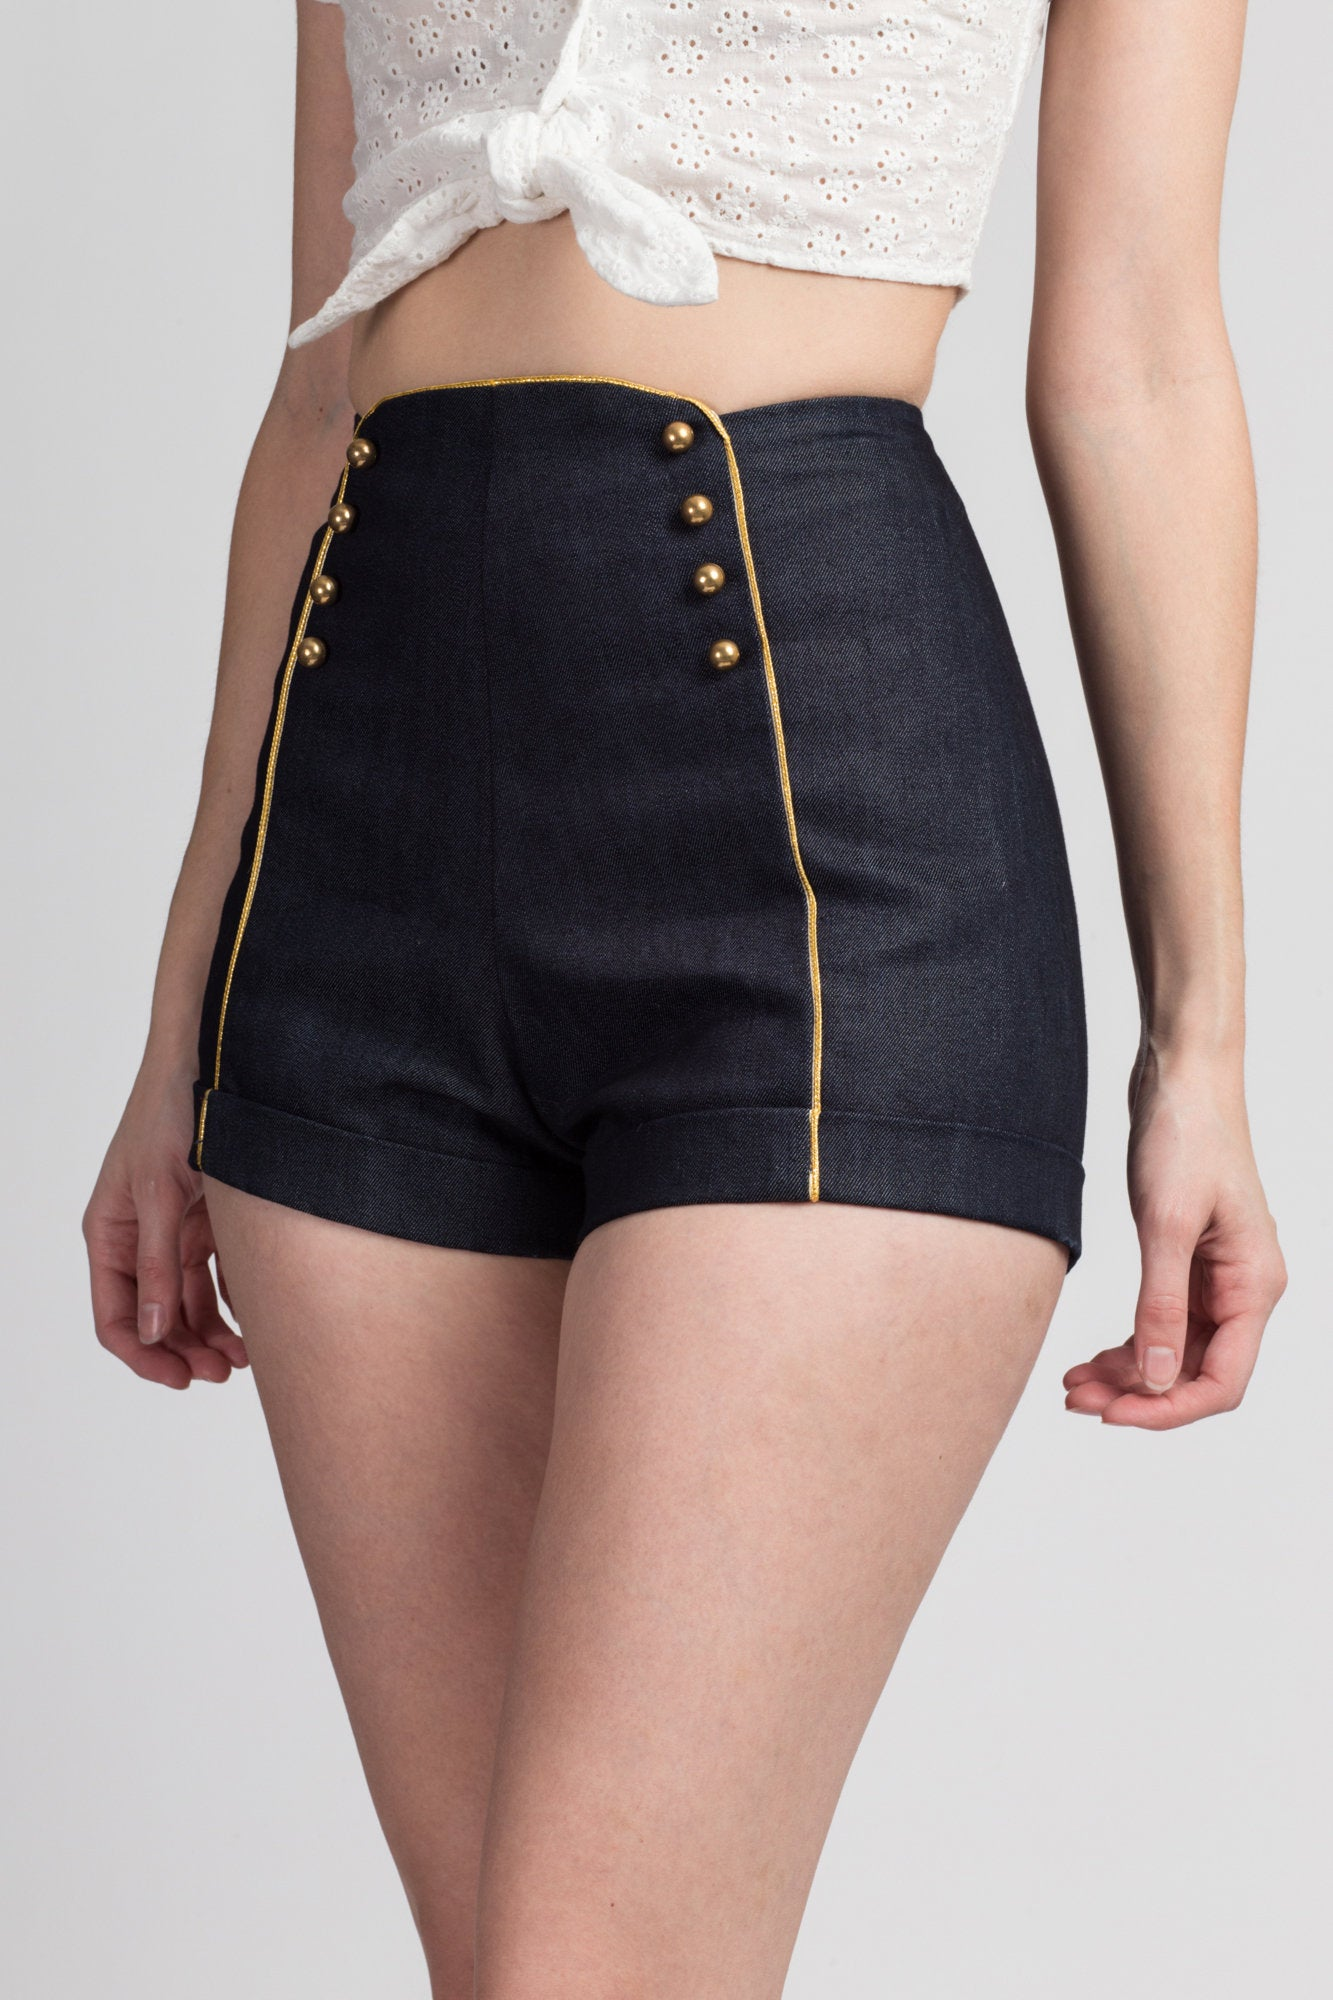 Vintage Sailor Pinup High Waist Shorts - Extra Small